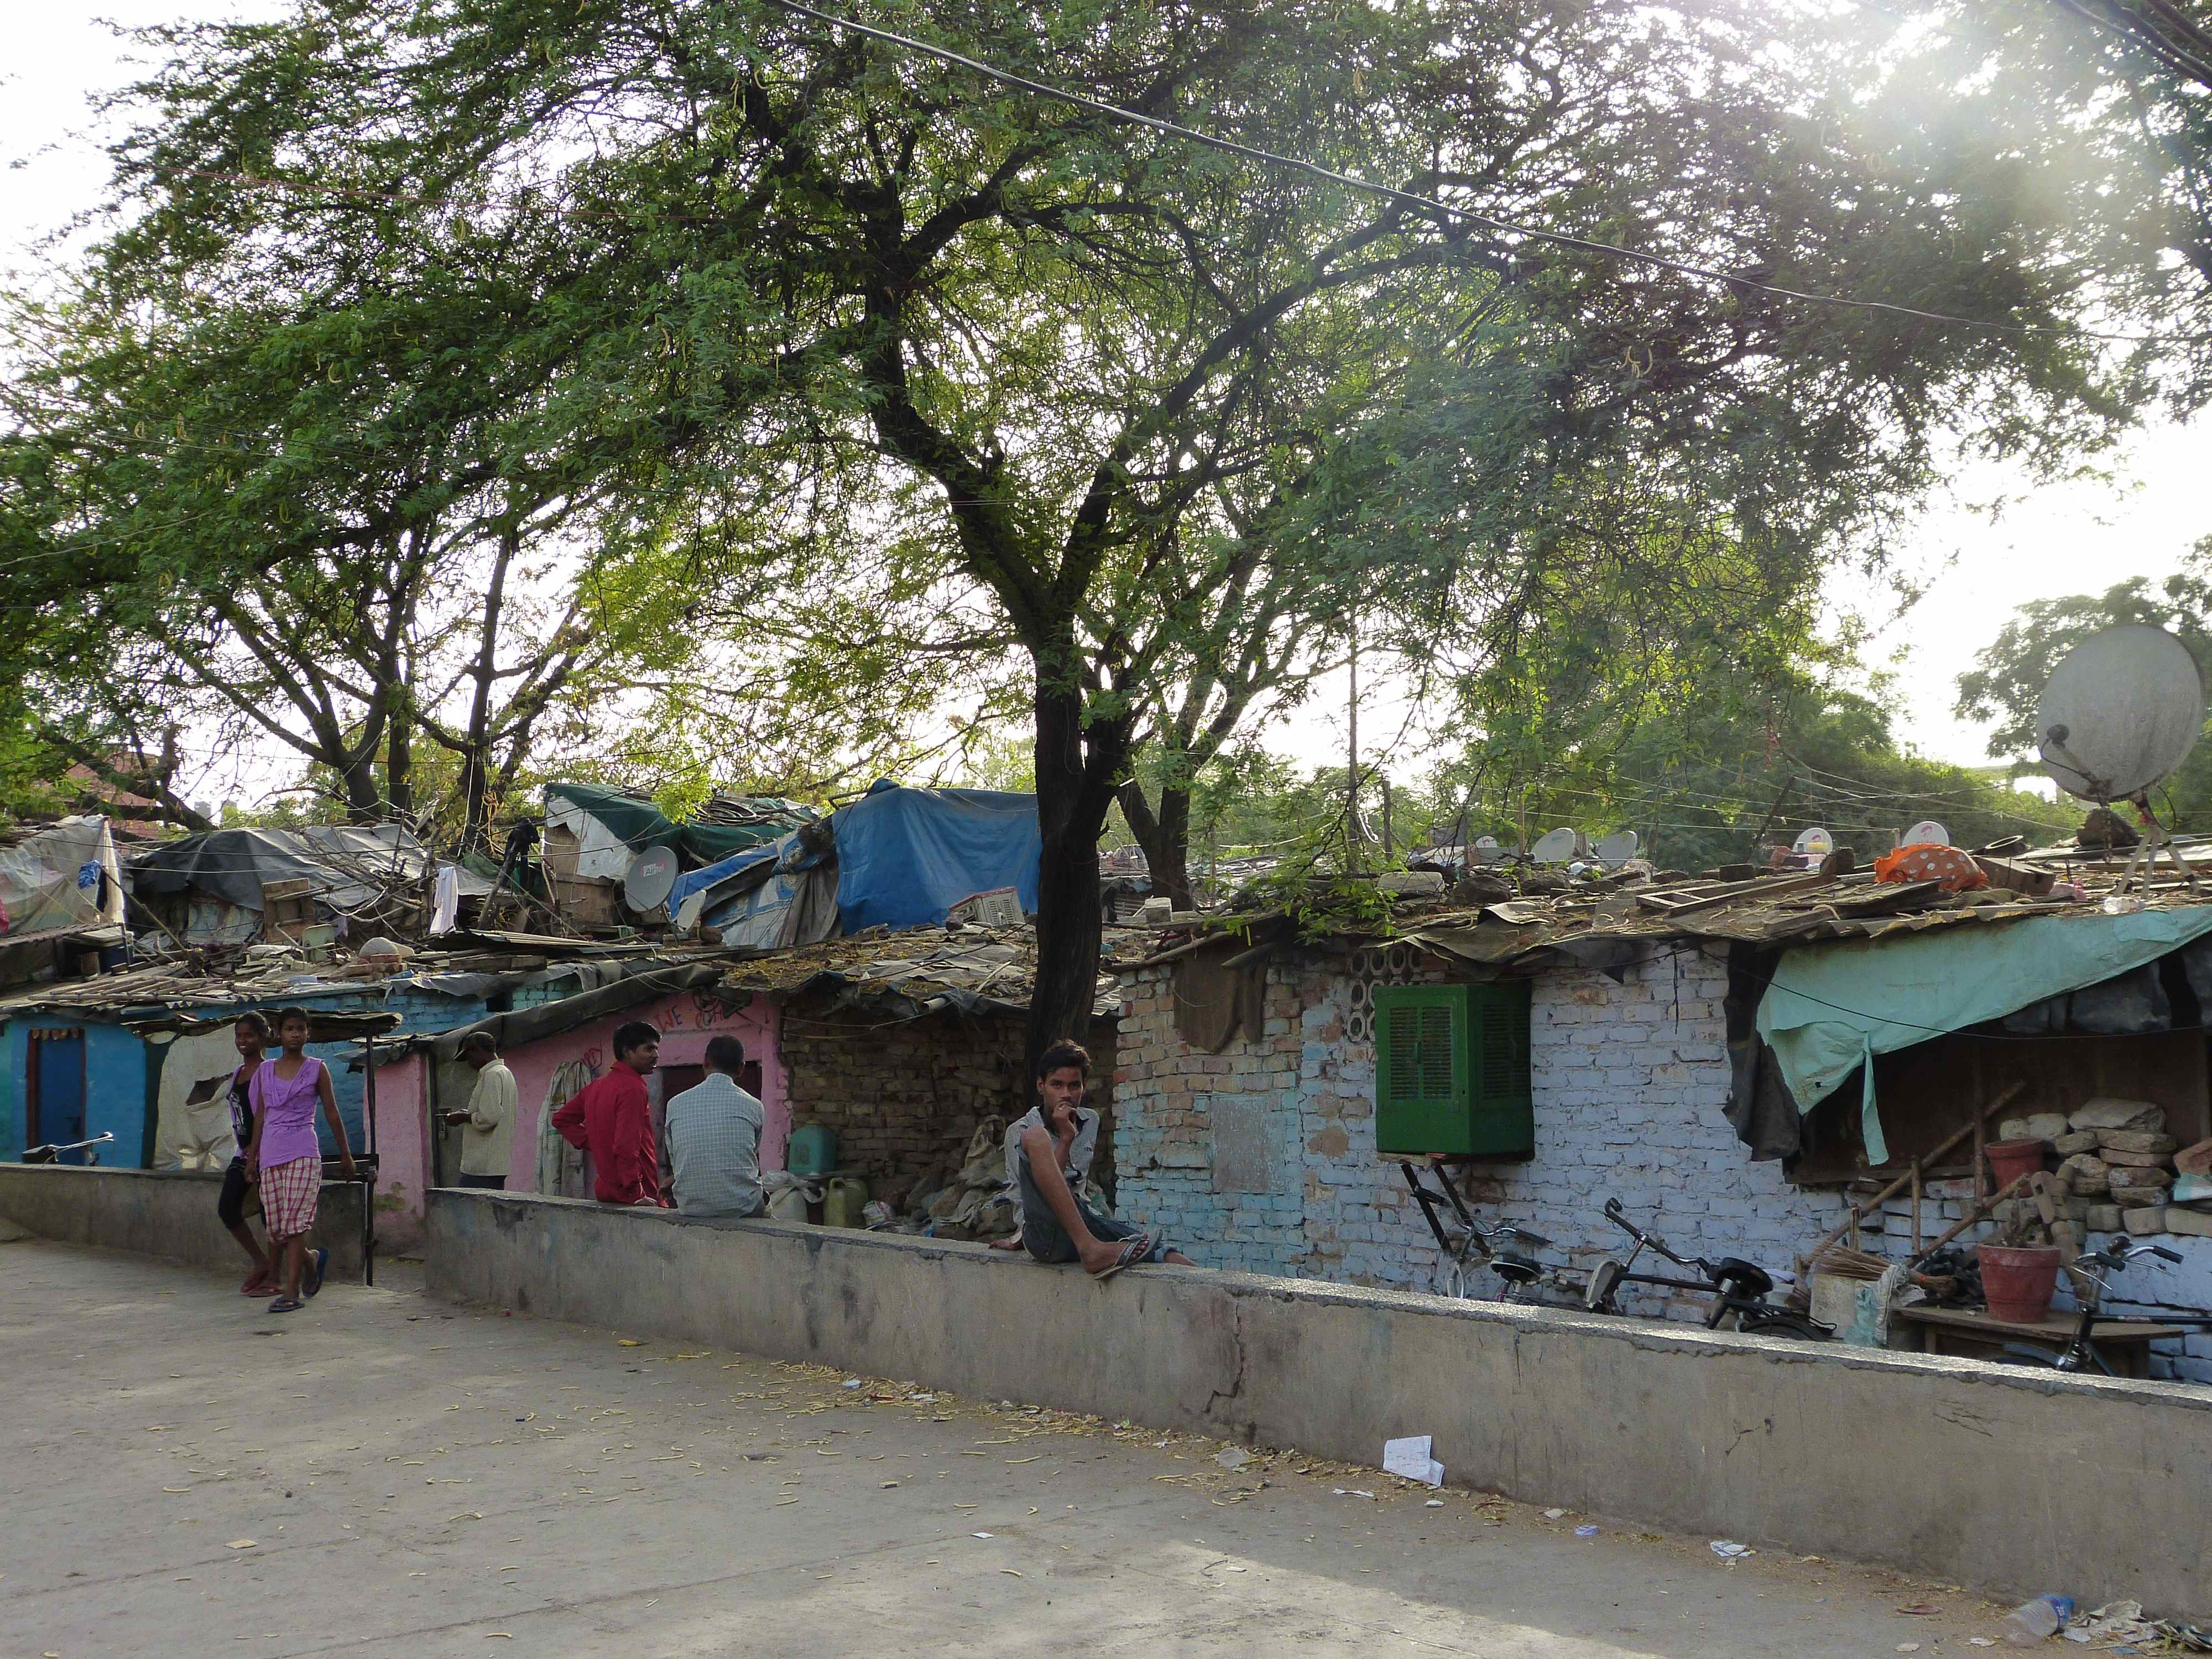 Life in the heart of an Indian Slum